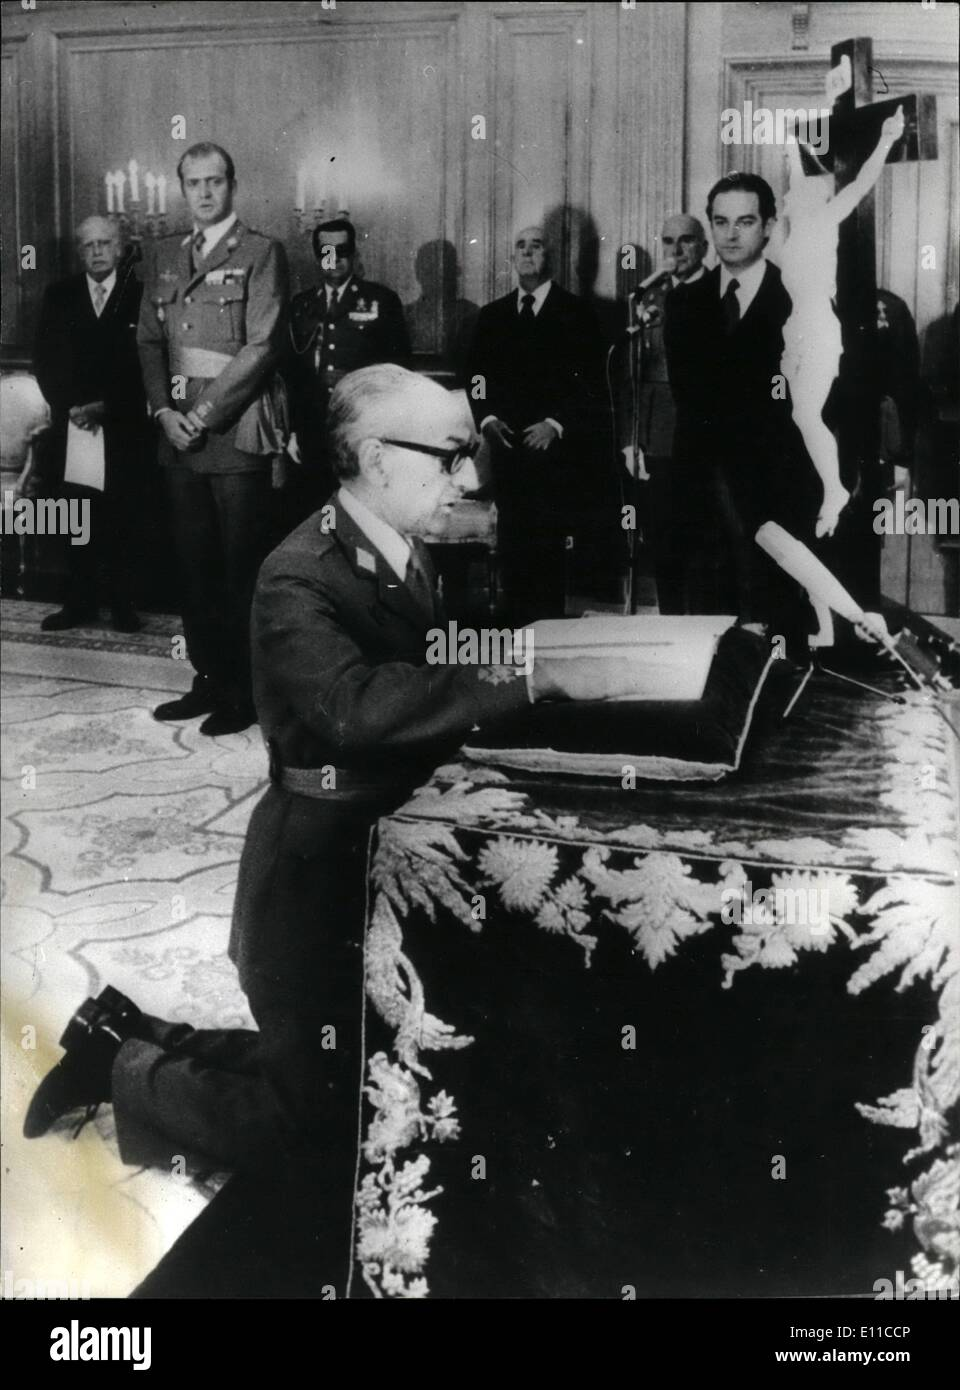 Sep. 09, 1976 - General Manuel Gutierrez Mellado is Sworn in as Spain's First Deputy Prime Minister. General Manuel Gutierrez Mellado, 64, was sworn in as Spain's First Deputy Prime Minister amid speculation that is may eventually take over the Premiership from Senor Adolfo Suares. Photo Shows: General Manuel Gutierrez Mellado, kneeling with his hand on the Bible to swear loyalty to the Government and Church on his appointment as Spain's First Deputy Prime Minister. Watching the ceremony is King Juan Carlos (left) - Stock Image